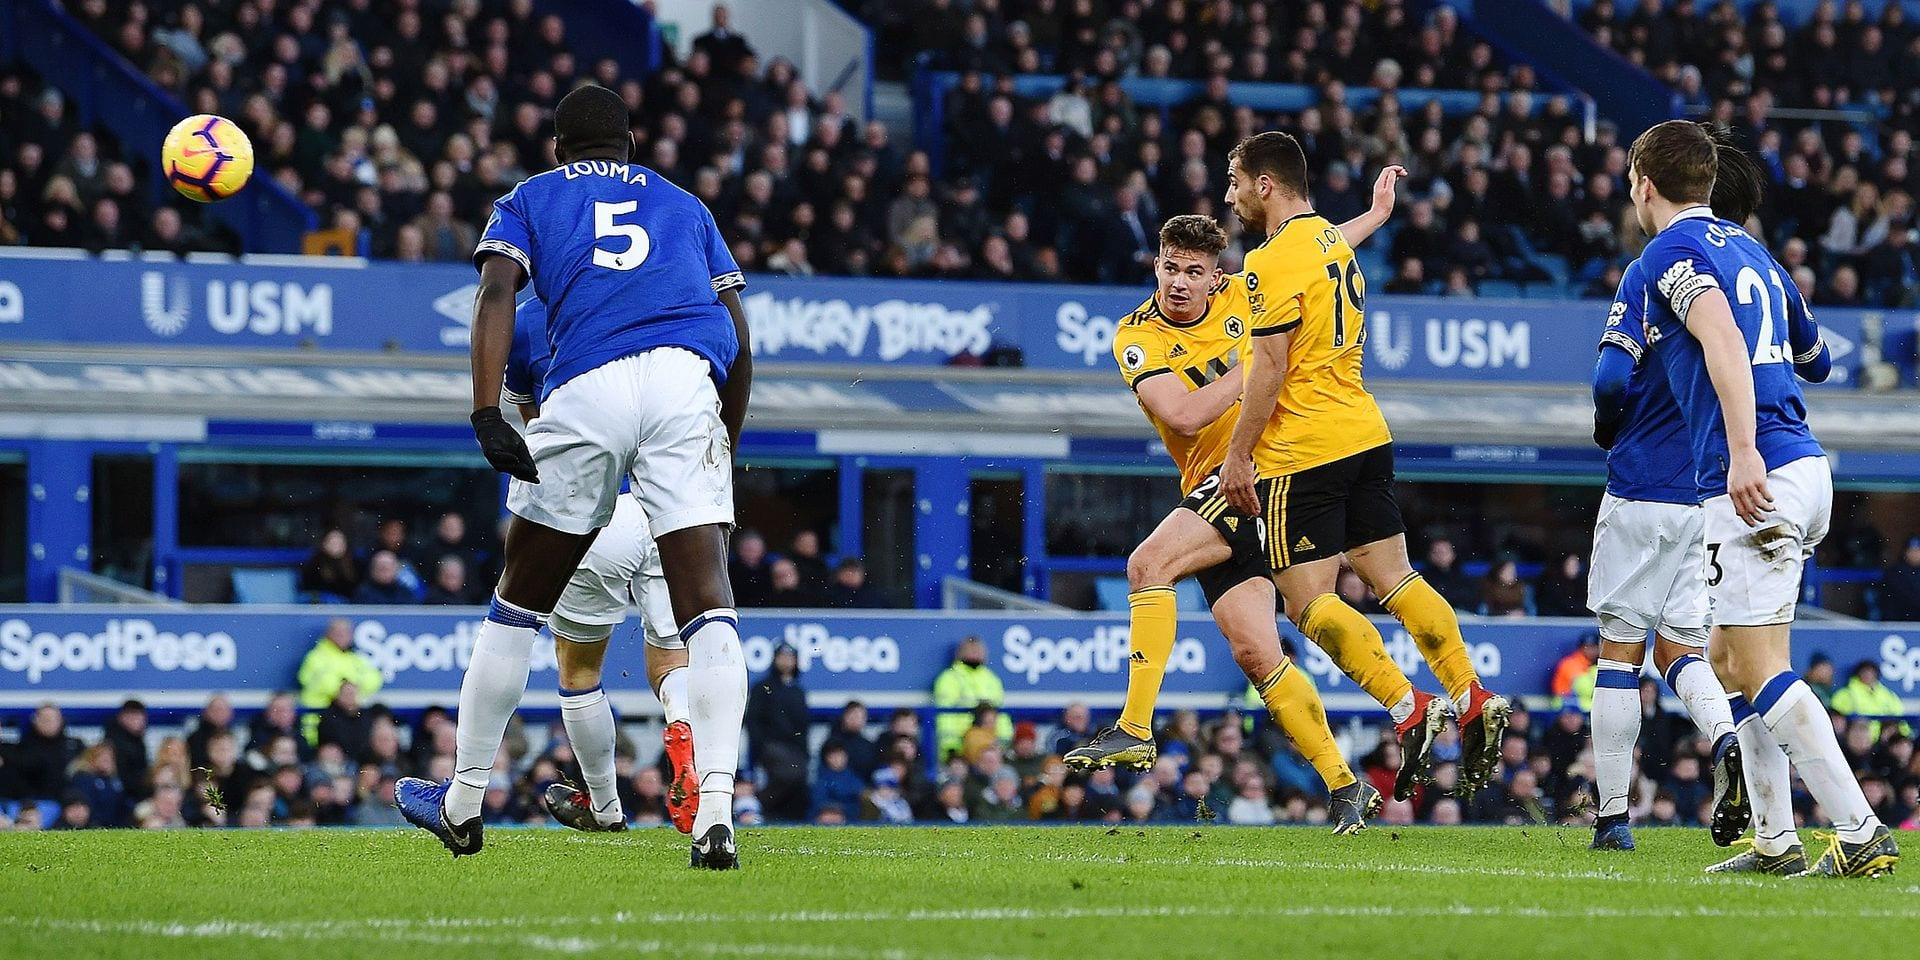 Wolverhampton Wanderers' Belgian midfielder Leander Dendoncker (C) scores their third goal during the English Premier League football match between Everton and Wolverhampton Wanderers at Goodison Park in Liverpool, north west England on February 2, 2019. (Photo by Paul ELLIS / AFP) / RESTRICTED TO EDITORIAL USE. No use with unauthorized audio, video, data, fixture lists, club/league logos or 'live' services. Online in-match use limited to 120 images. An additional 40 images may be used in extra time. No video emulation. Social media in-match use limited to 120 images. An additional 40 images may be used in extra time. No use in betting publications, games or single club/league/player publications. /